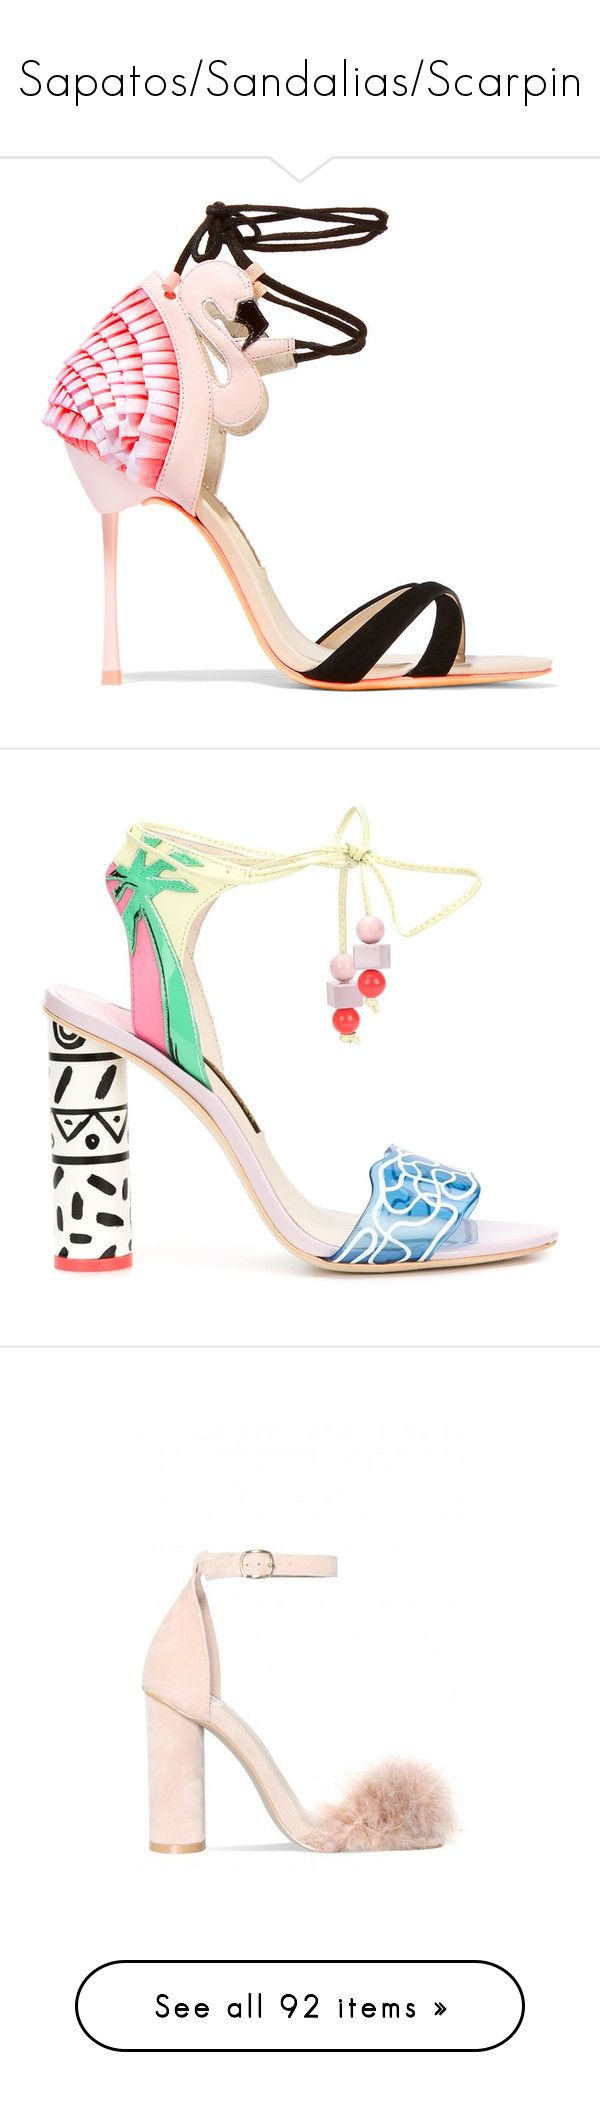 """""""Sapatos/Sandalias/Scarpin"""" by gabriel-sampaiooo on Polyvore featuring shoes, sandals, heels, high heels, sophia webster, pink, strappy high heel sandals, ankle strap heel sandals, leather sandals e ankle strap sandals"""